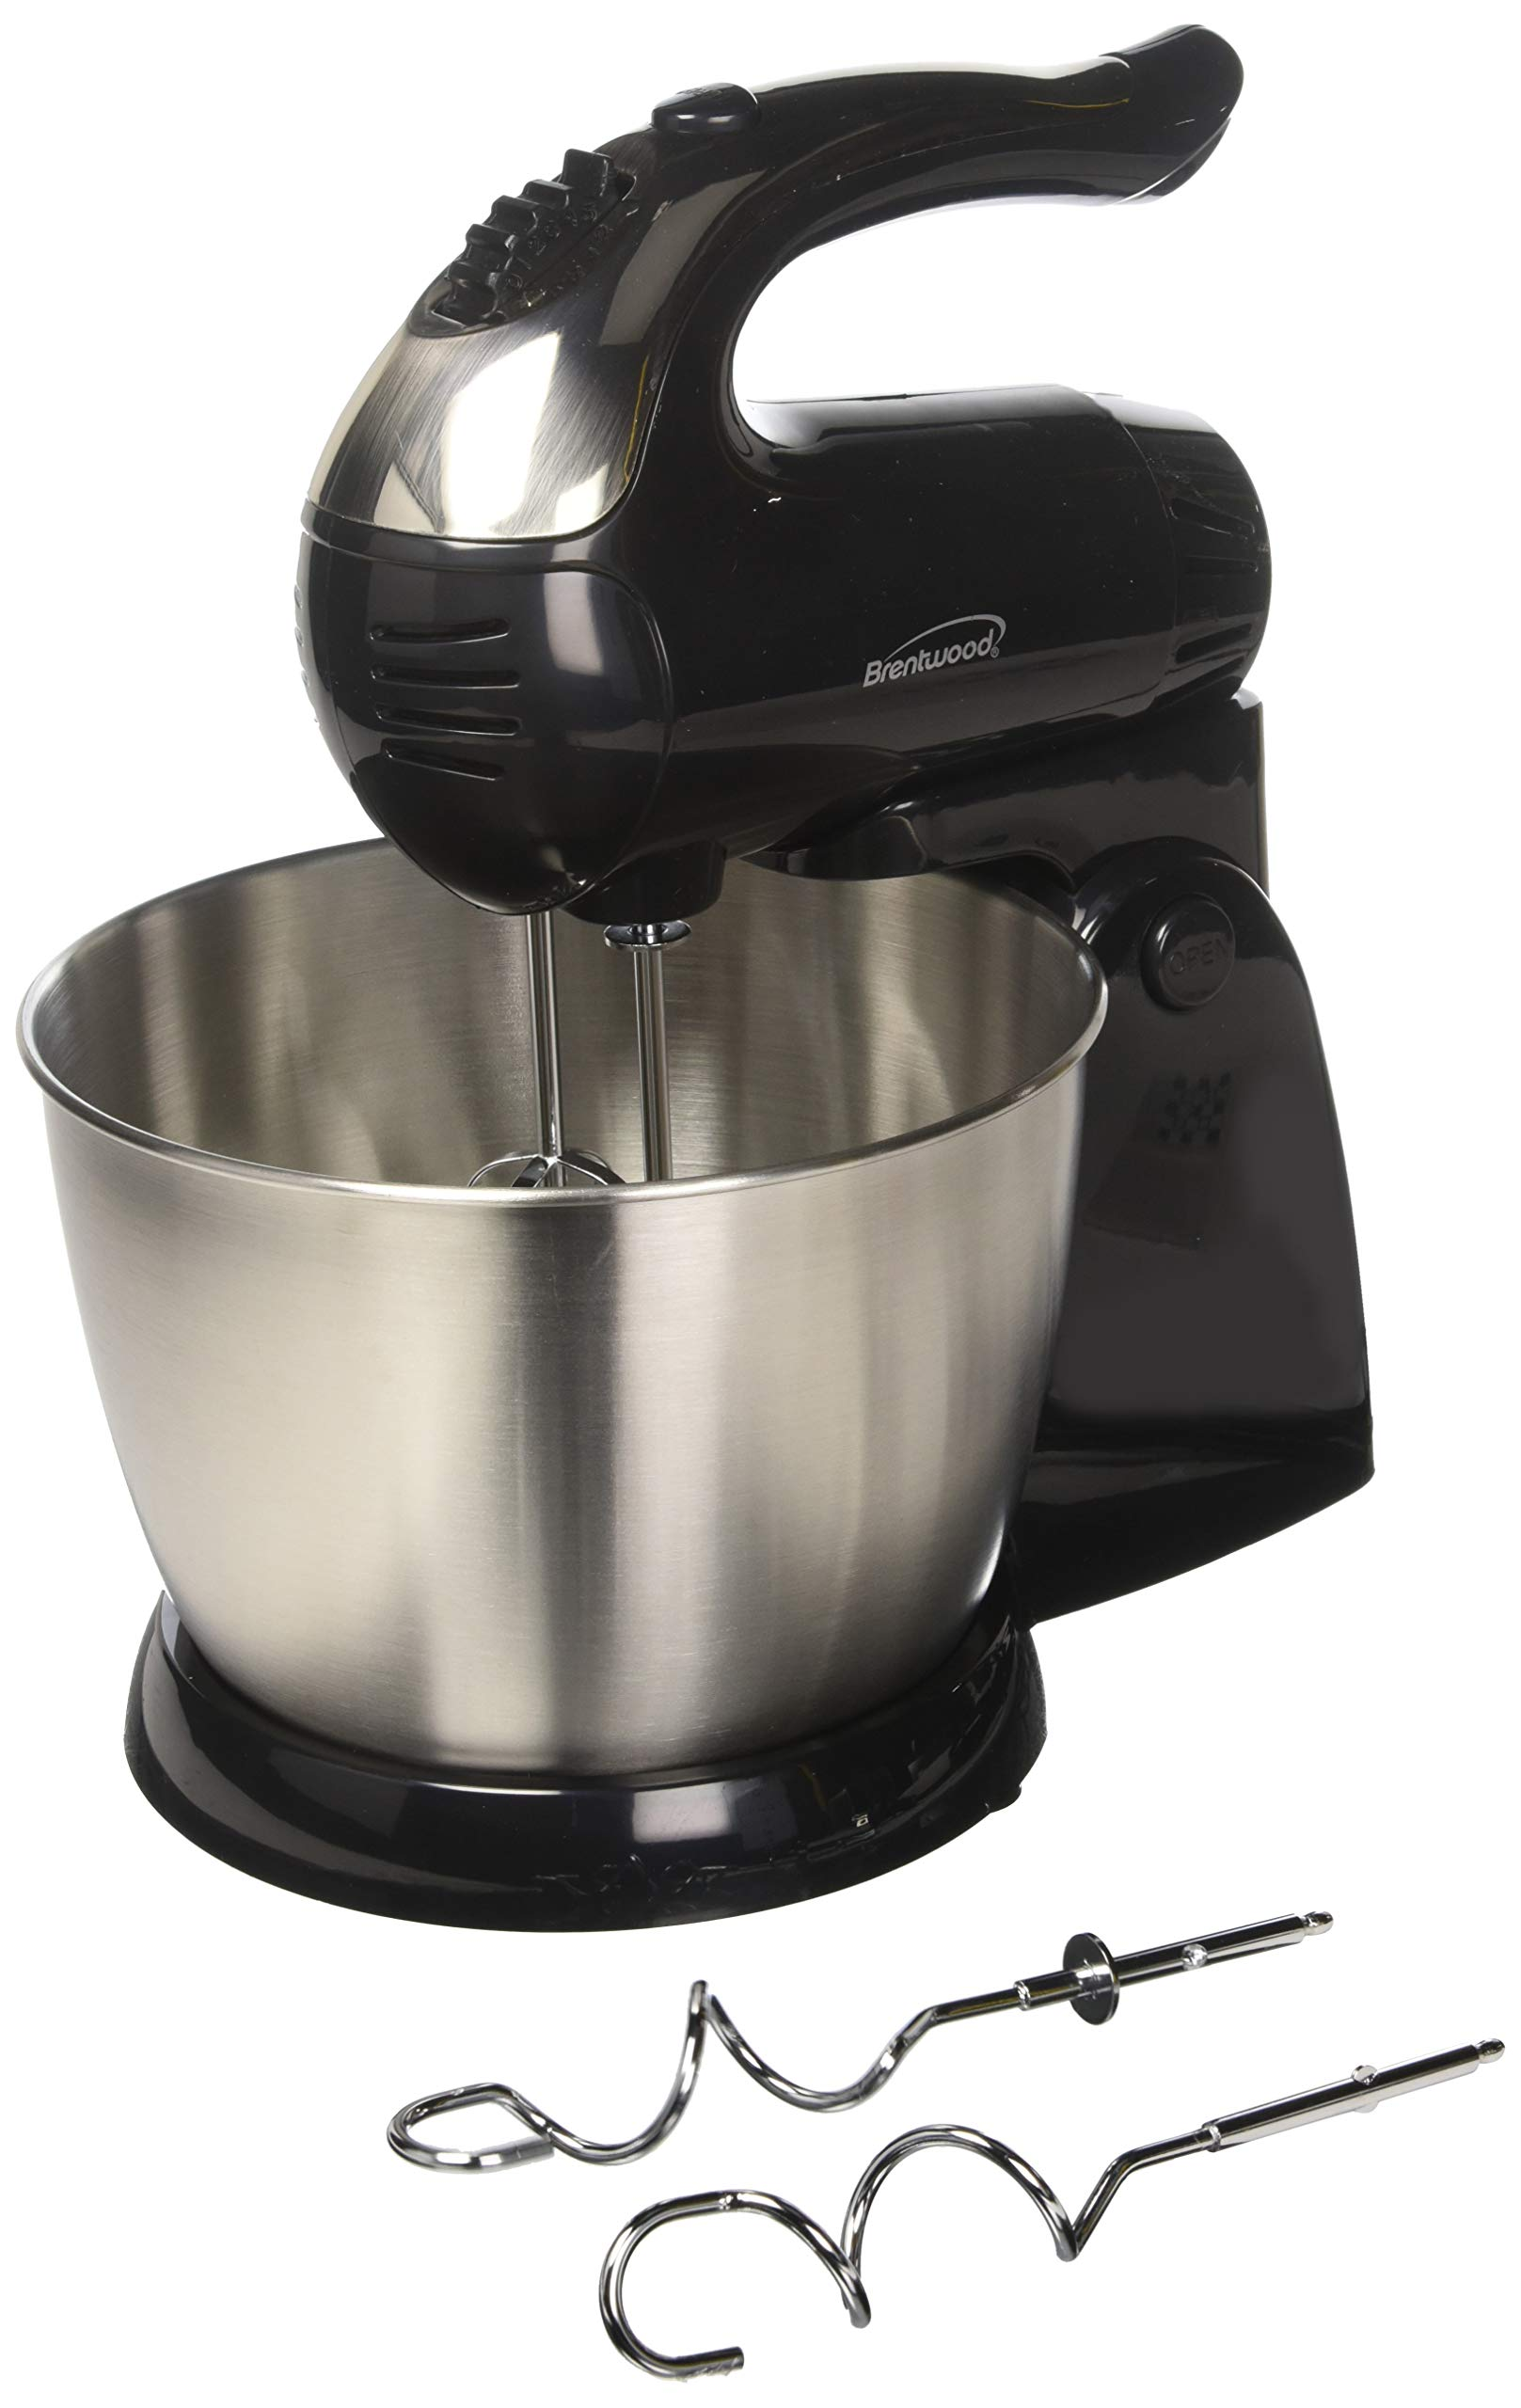 Brentwood 5 Speed Hand/Stand Mixer